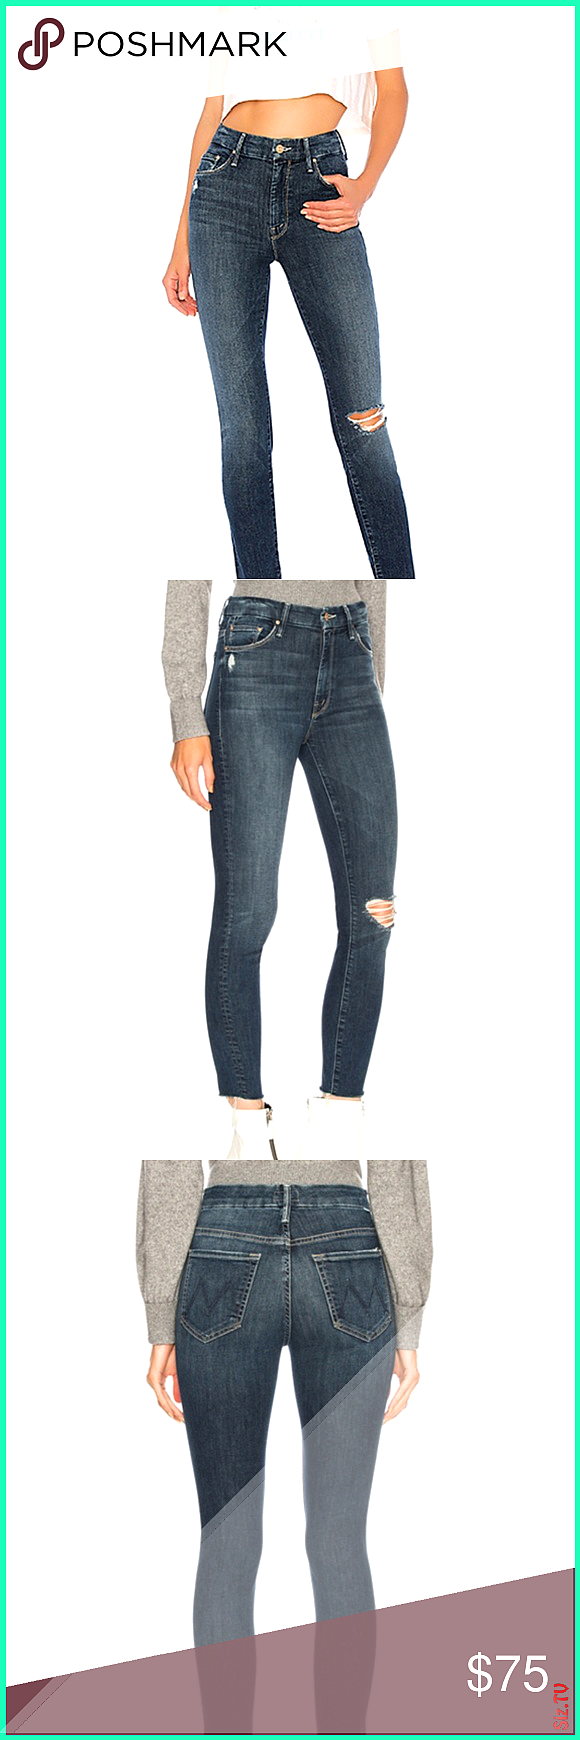 Mother Looker High Waisted Skinny Jeans  Like new condition Worn once for a photoshoot Mother High W...